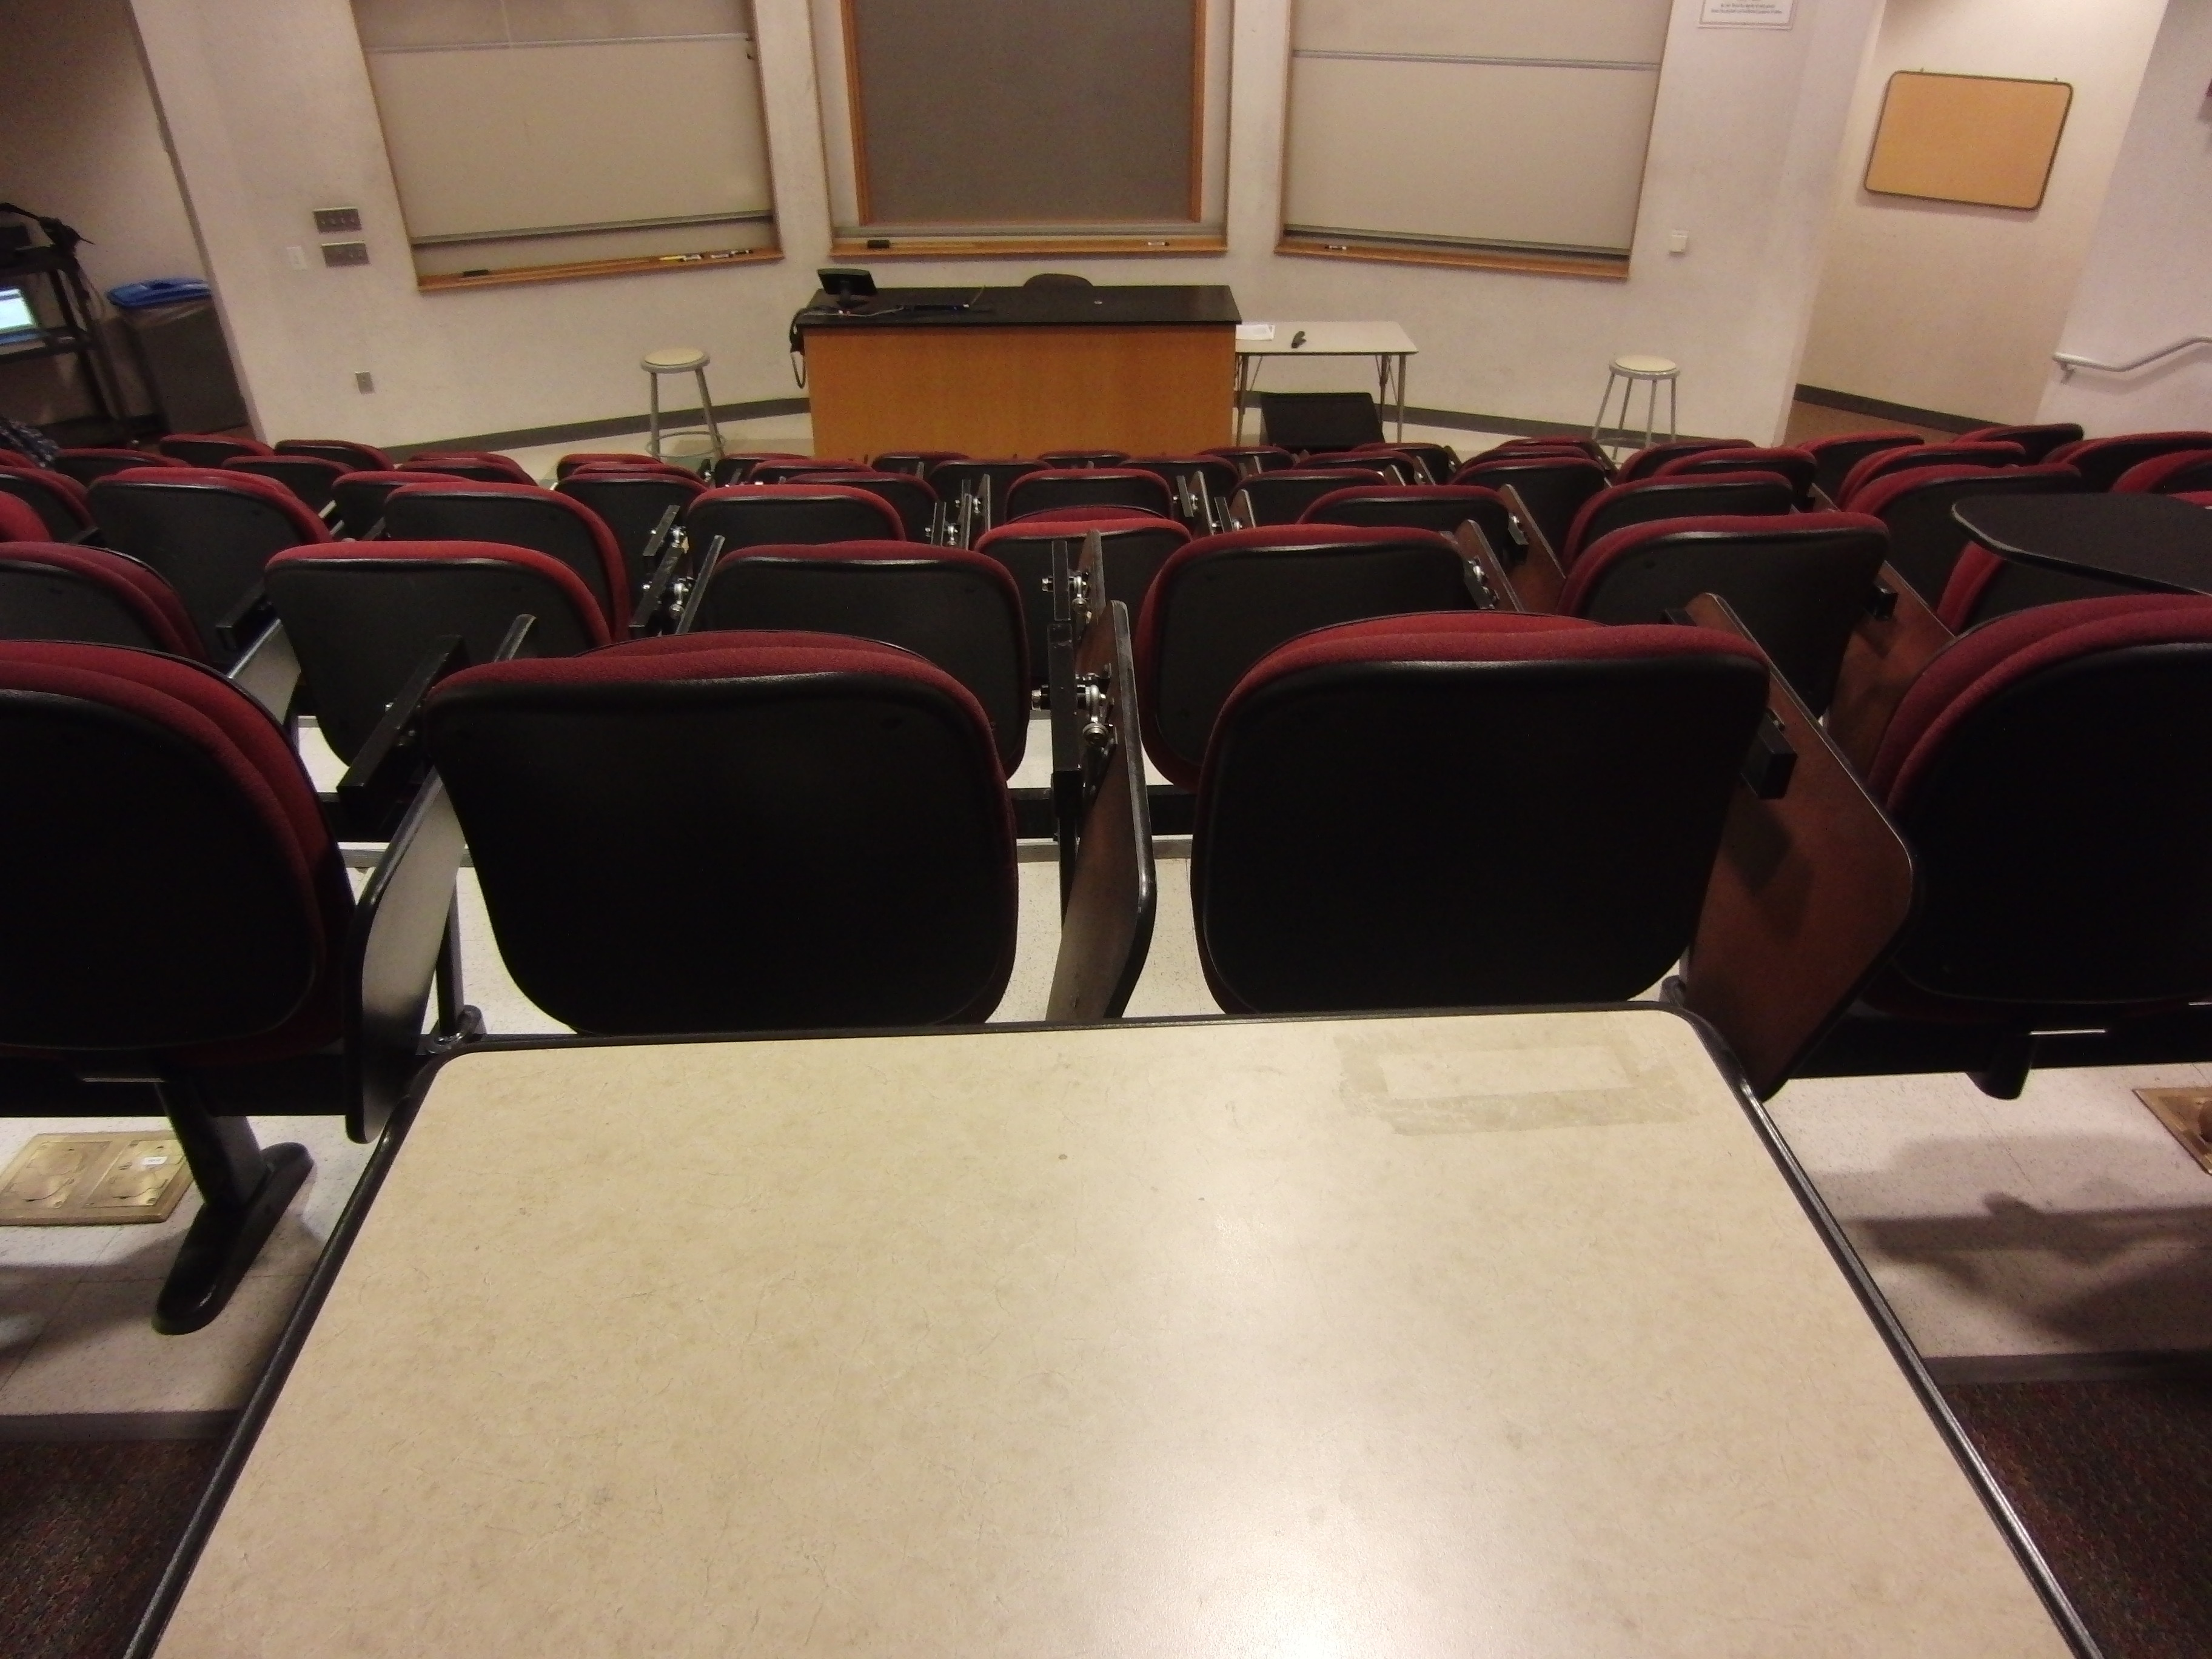 Photo of the lecture room looking from the upper part of the room towards the front stage area